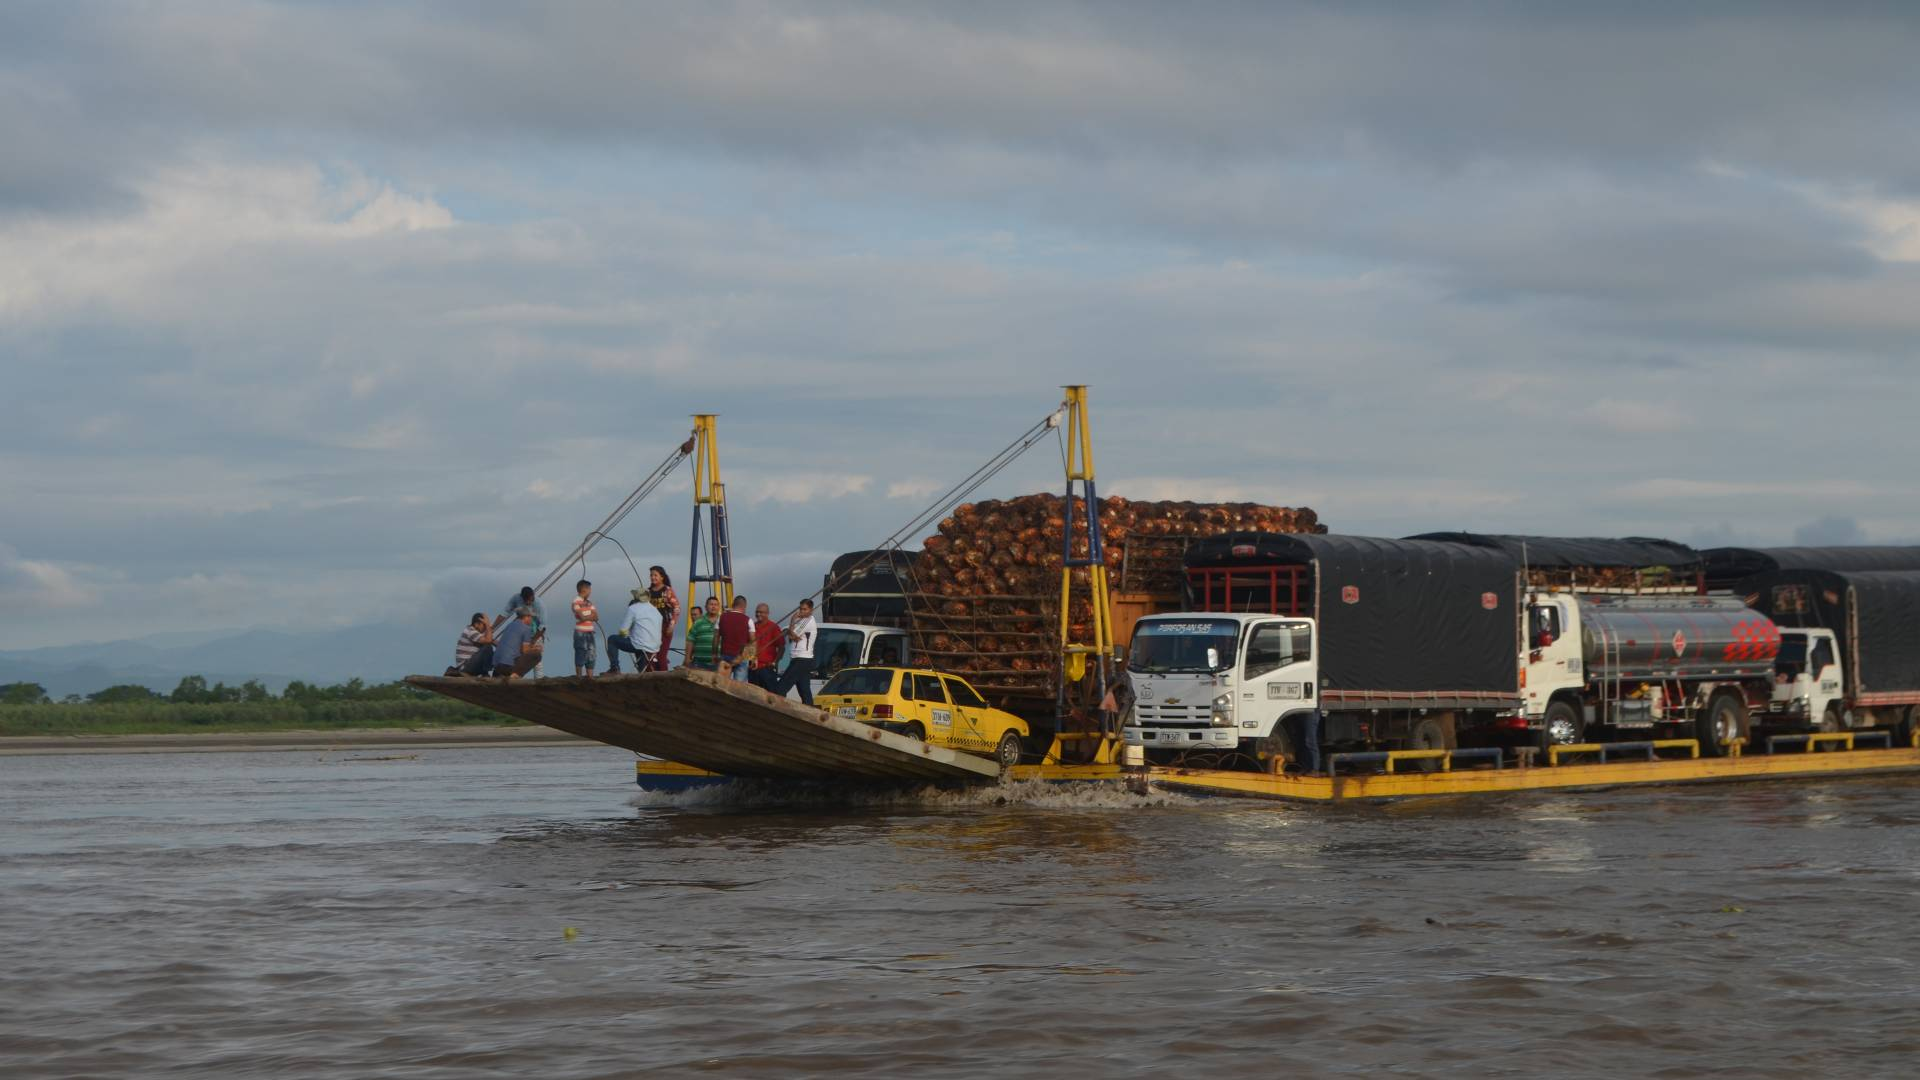 Barge filled with cars, trucks and people going across river